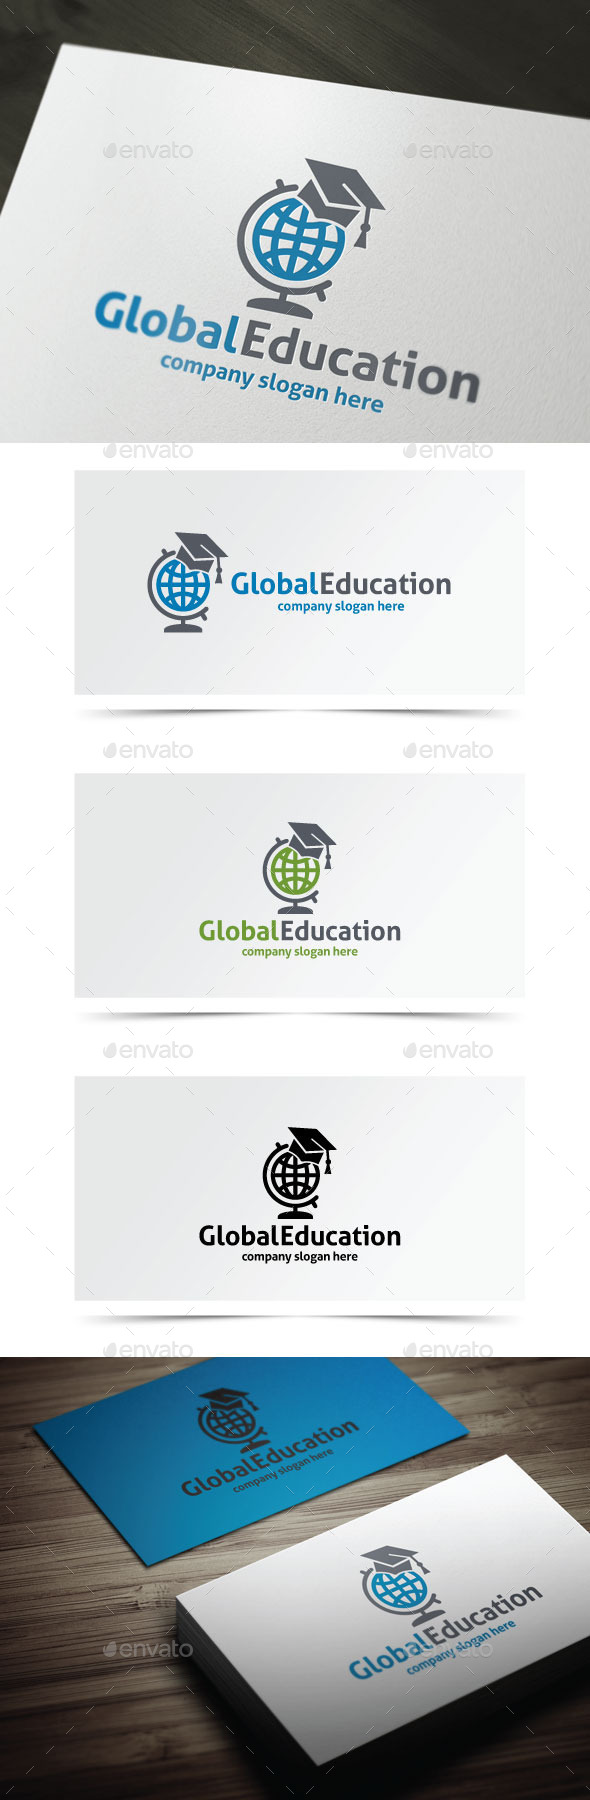 GraphicRiver Global Education 10229875